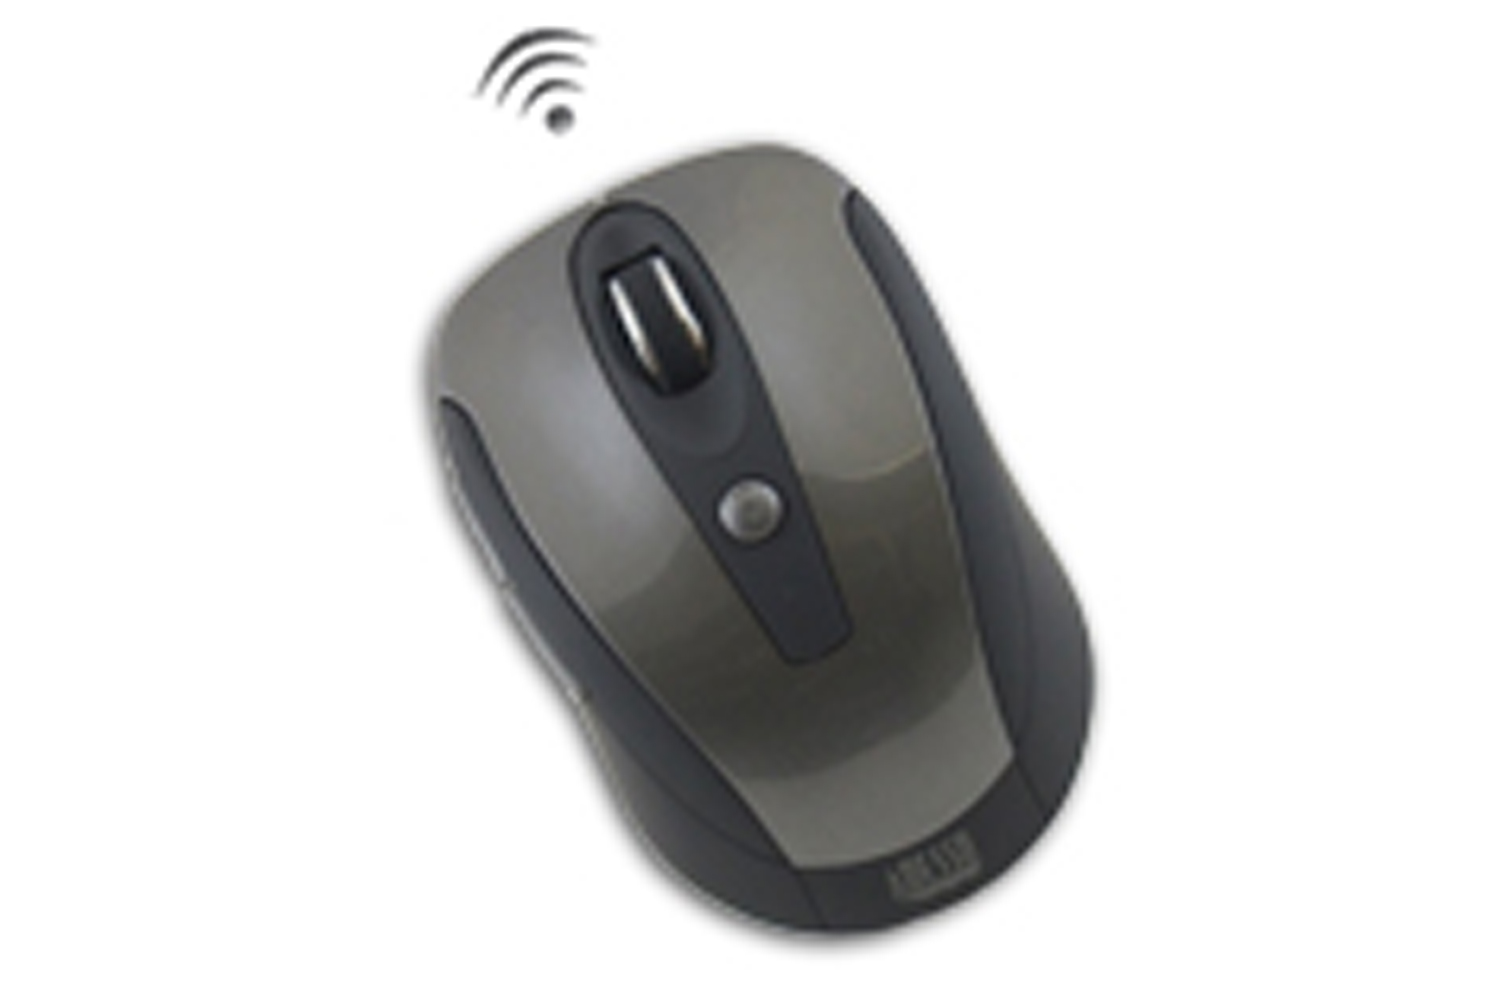 iMouse S10 - Adesso Wireless Mini Mouse